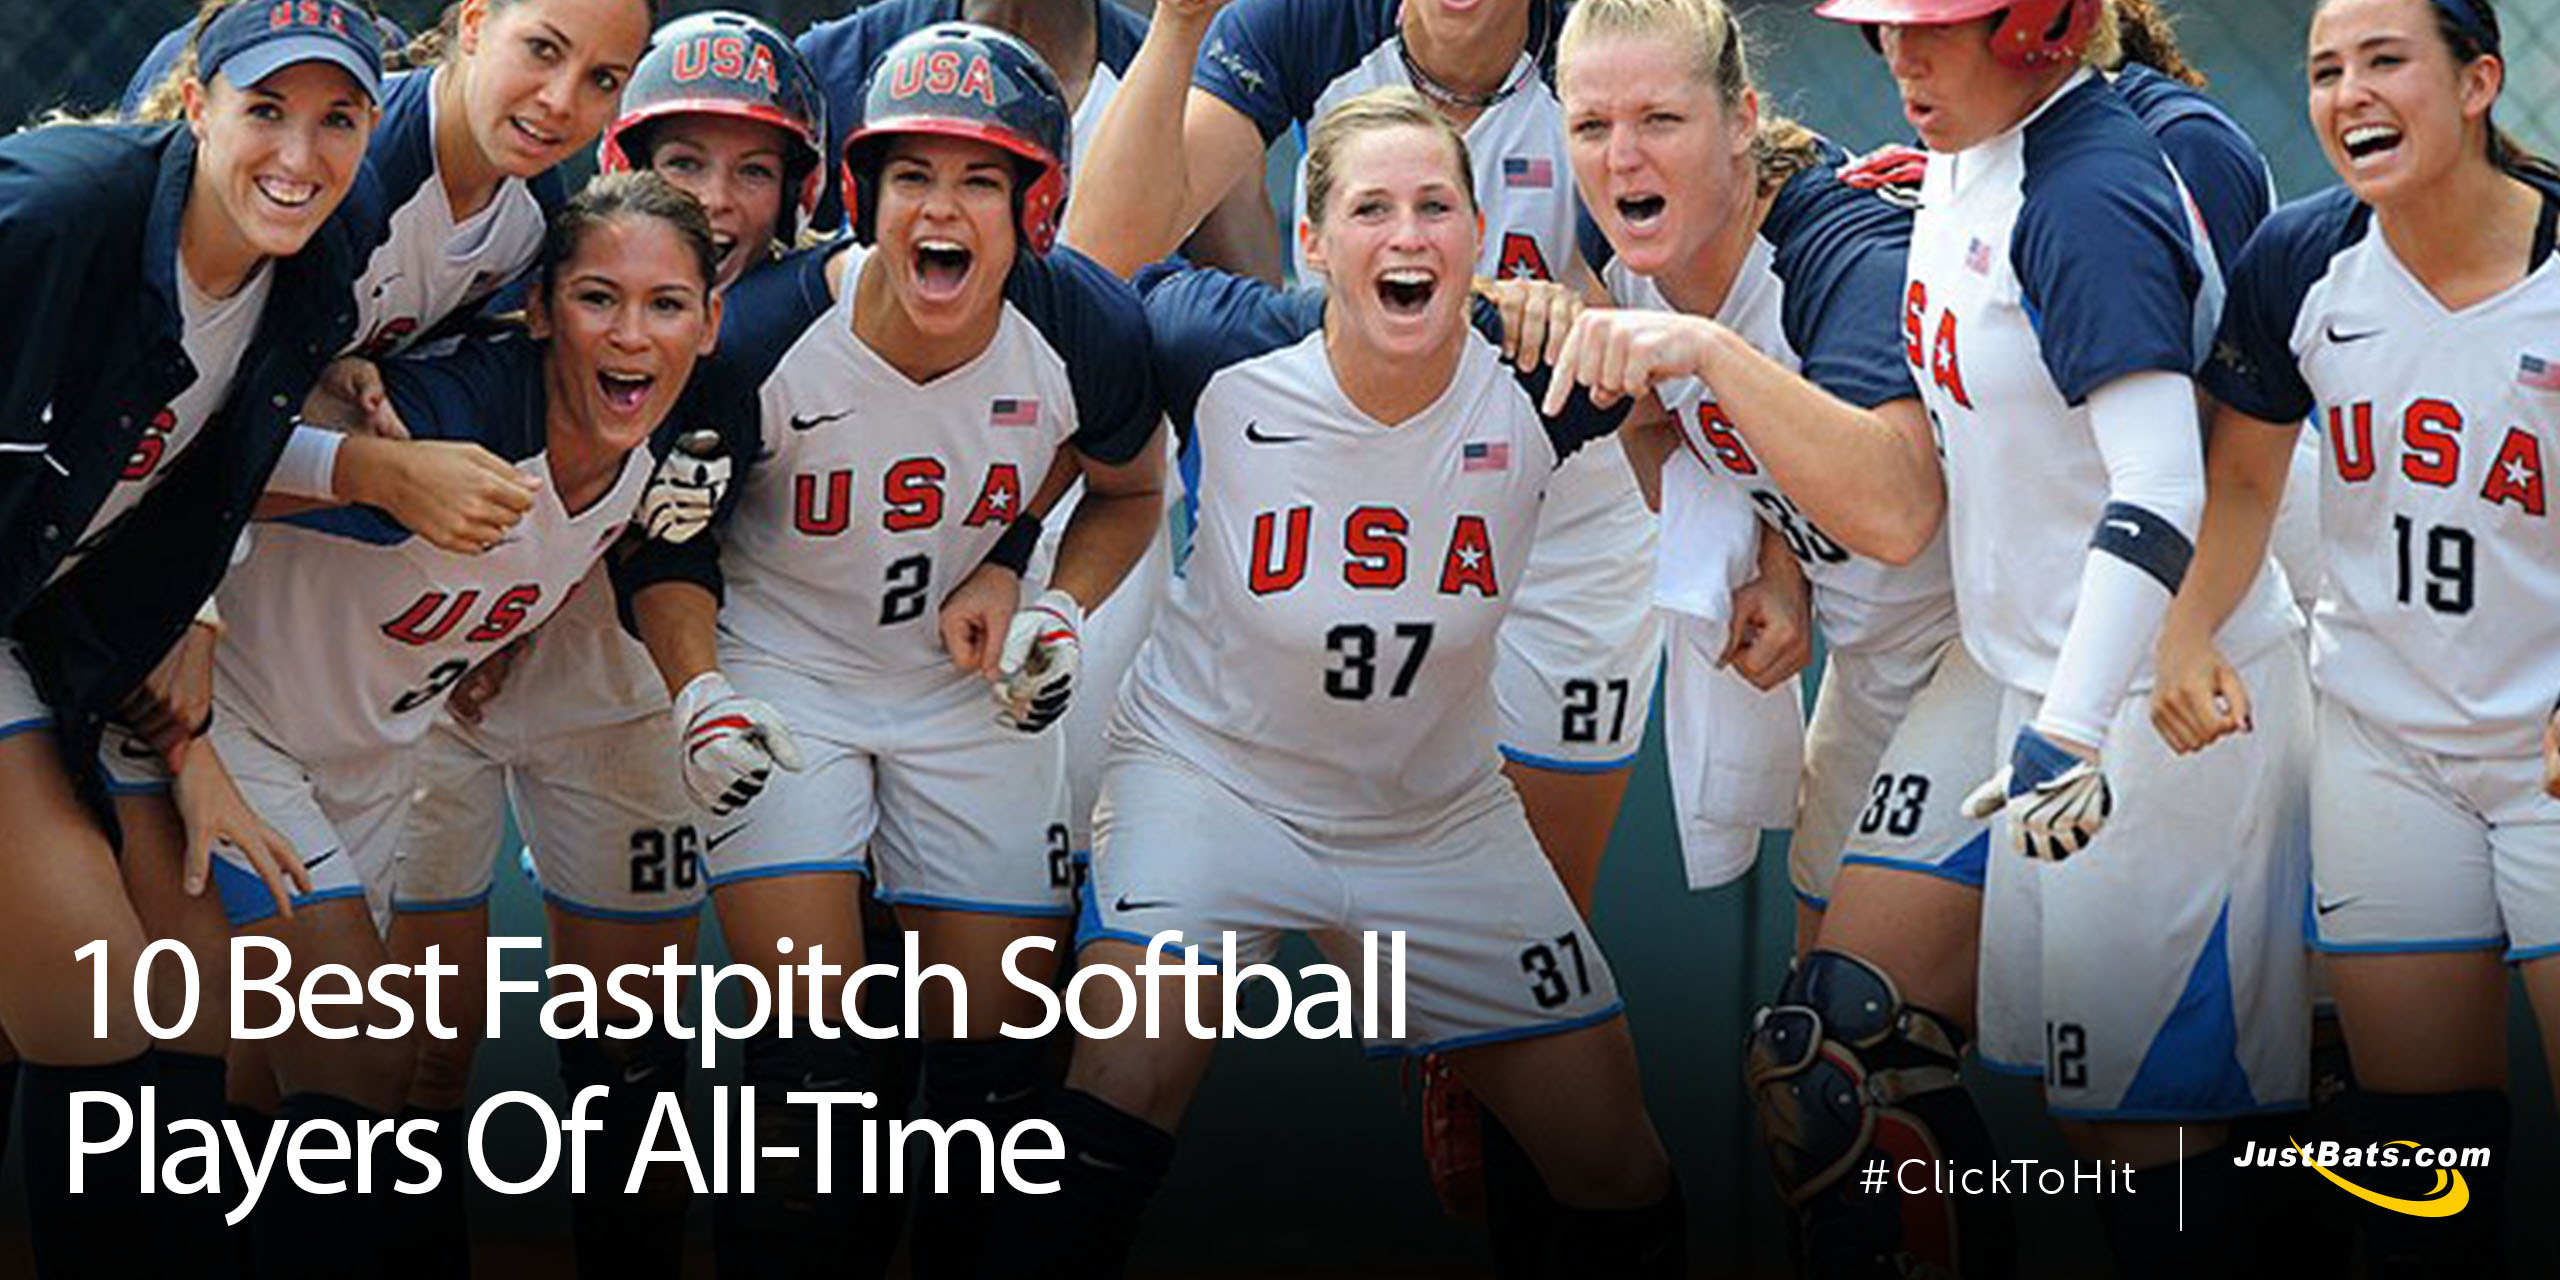 10 Best Fastpitch Softball Players Of All Time